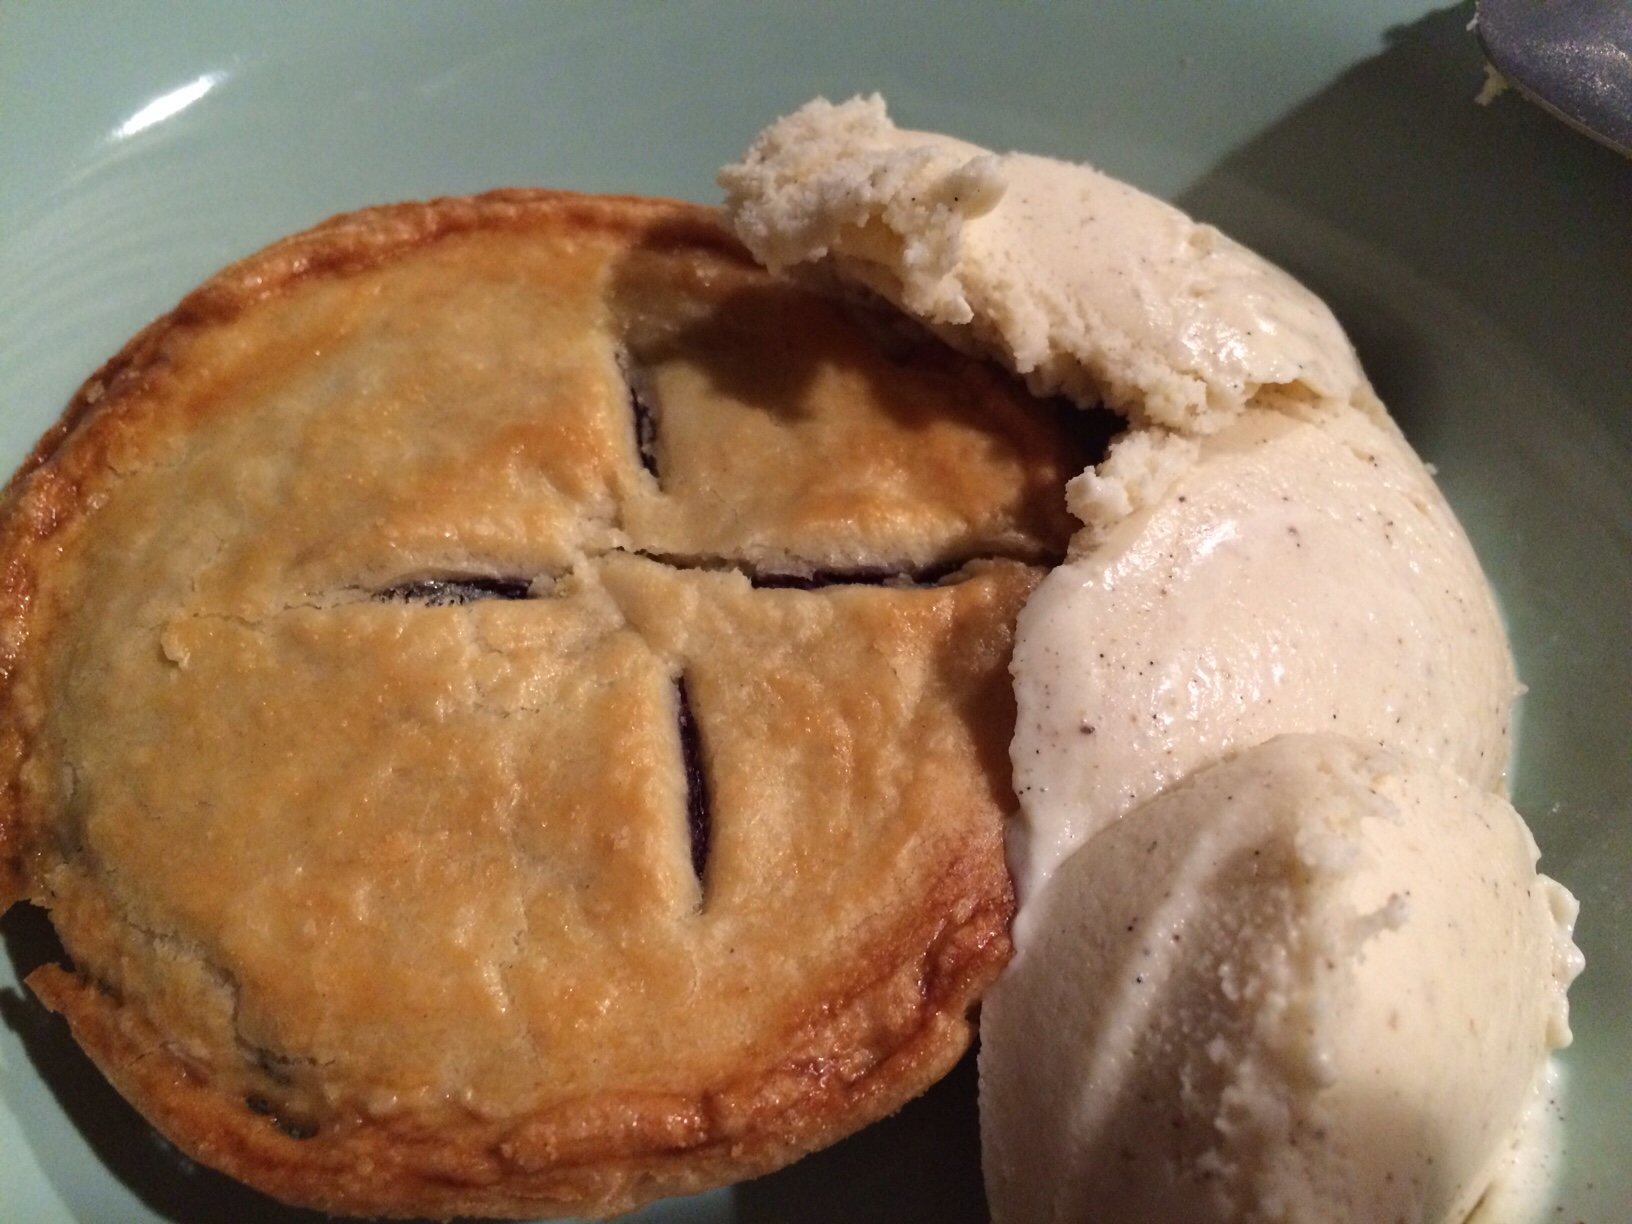 Blueberry pie and ice cream